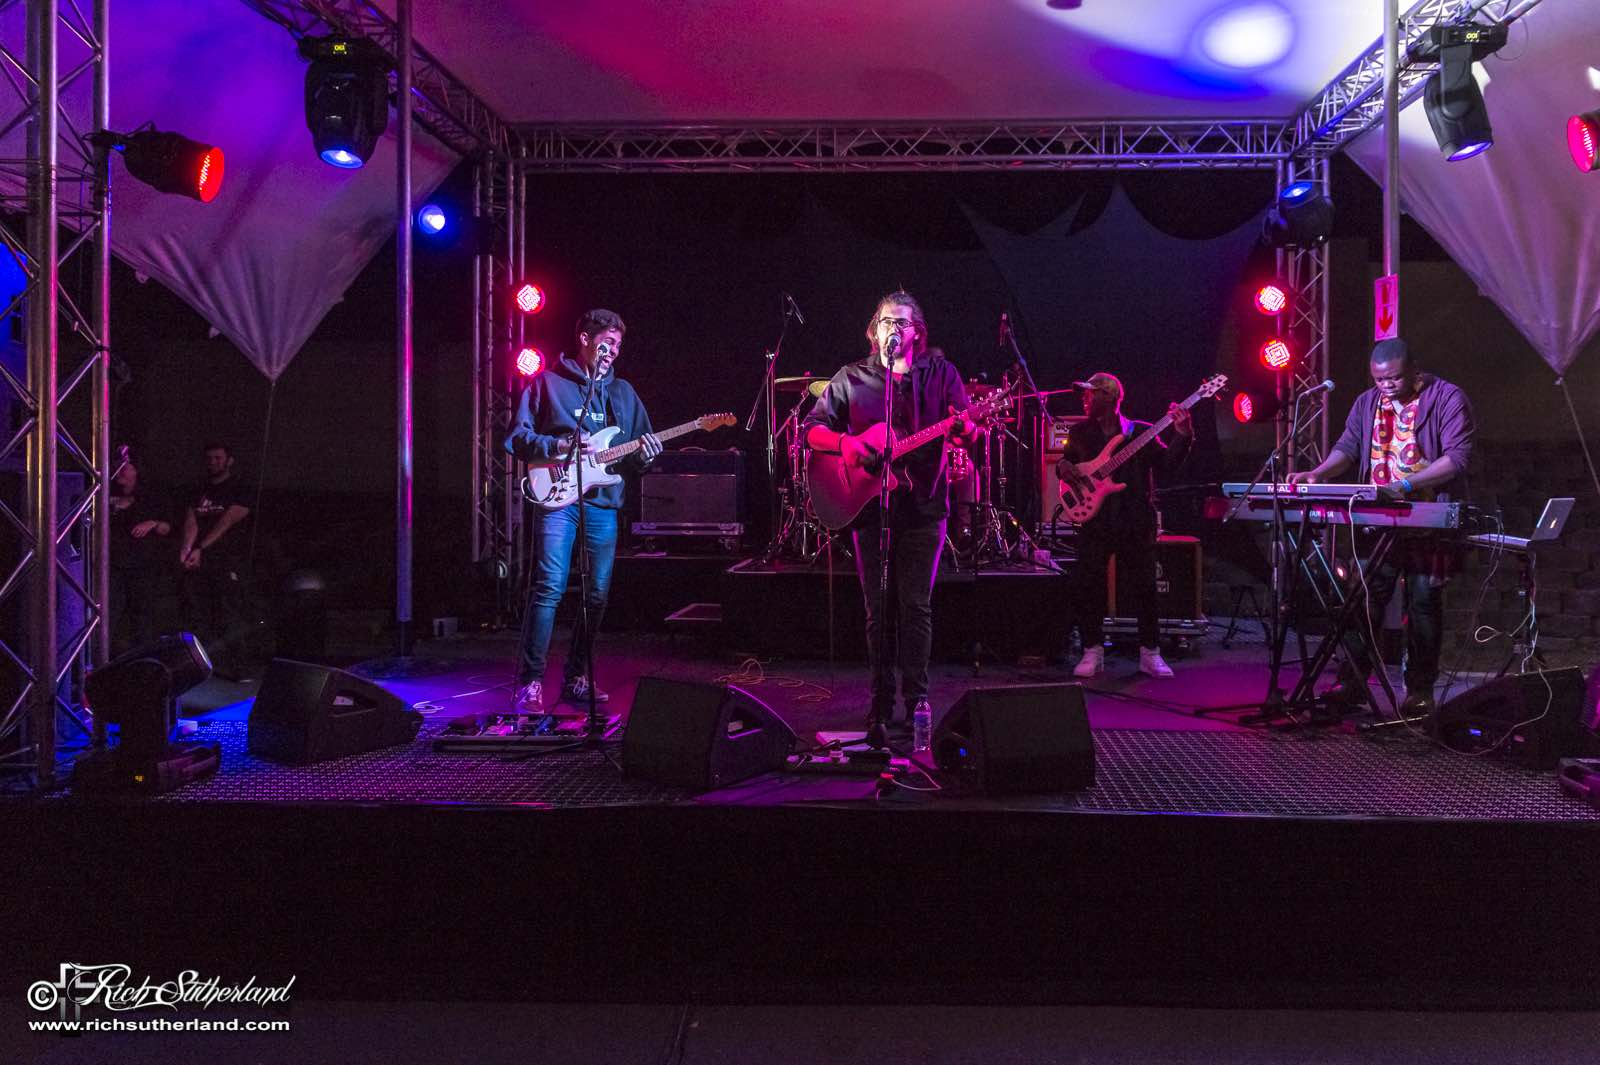 A selection of local bands performing at the SA Bike Festival